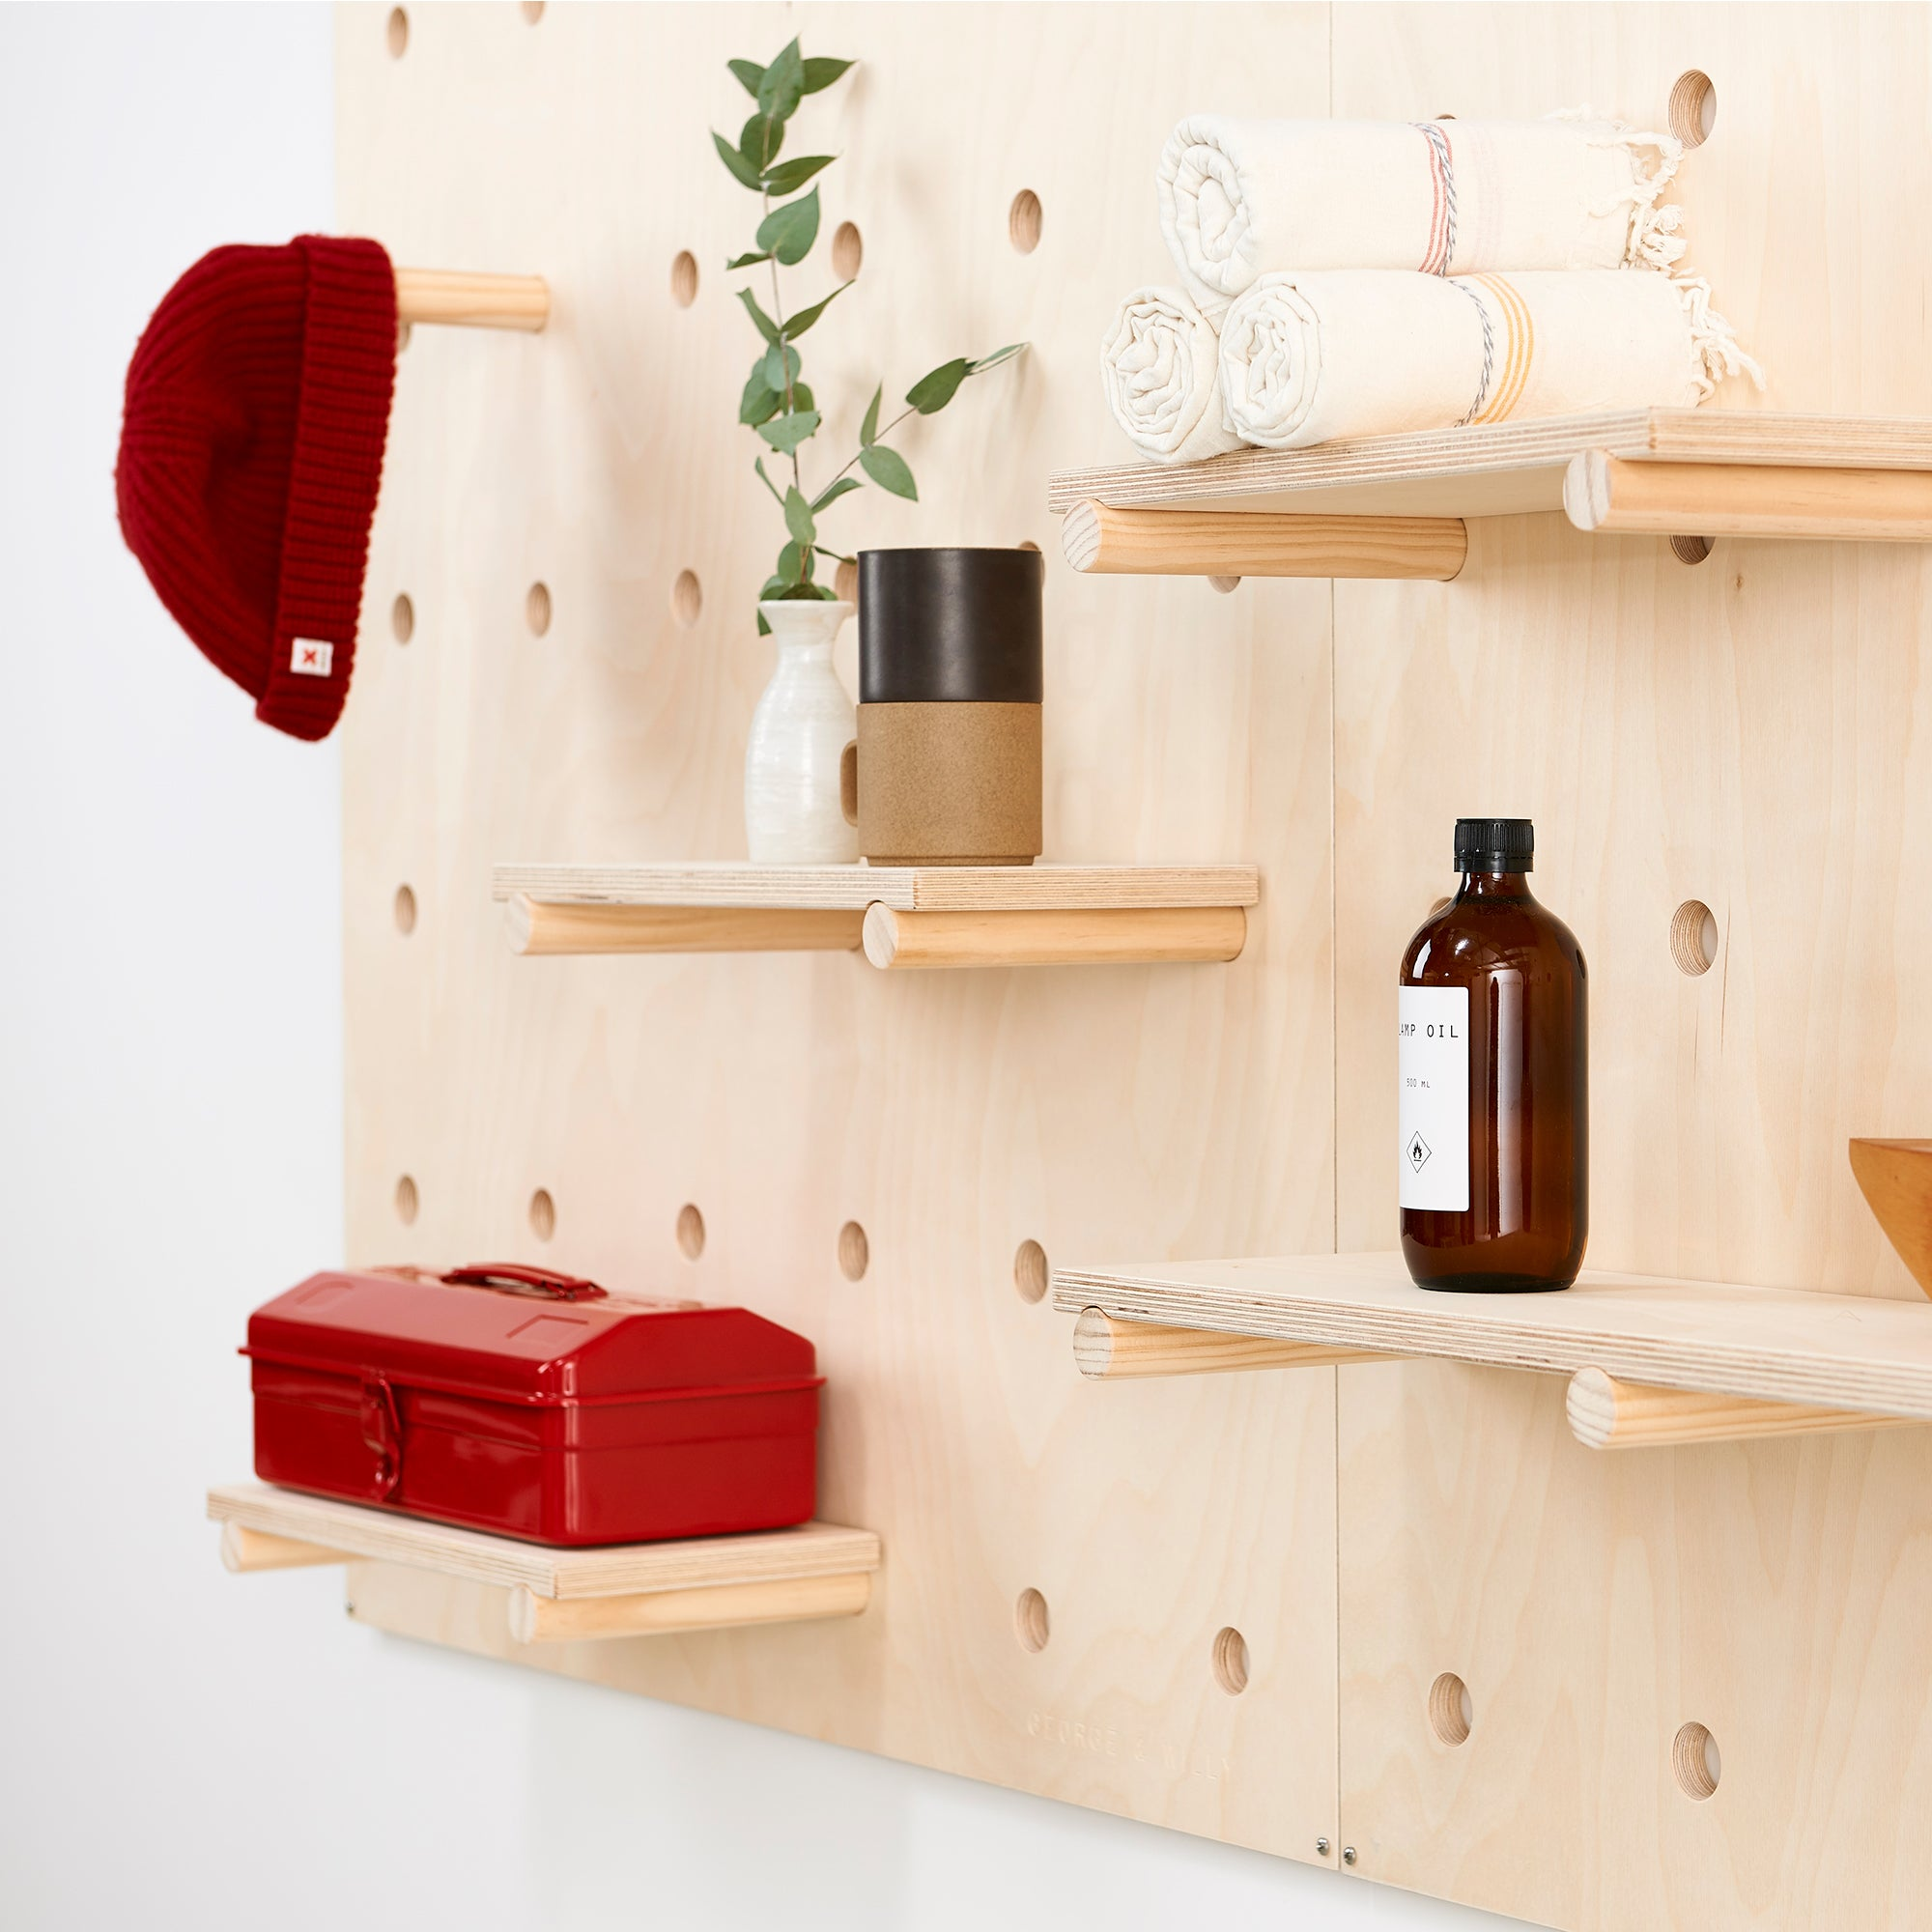 Pegboard with Wooden Pegs